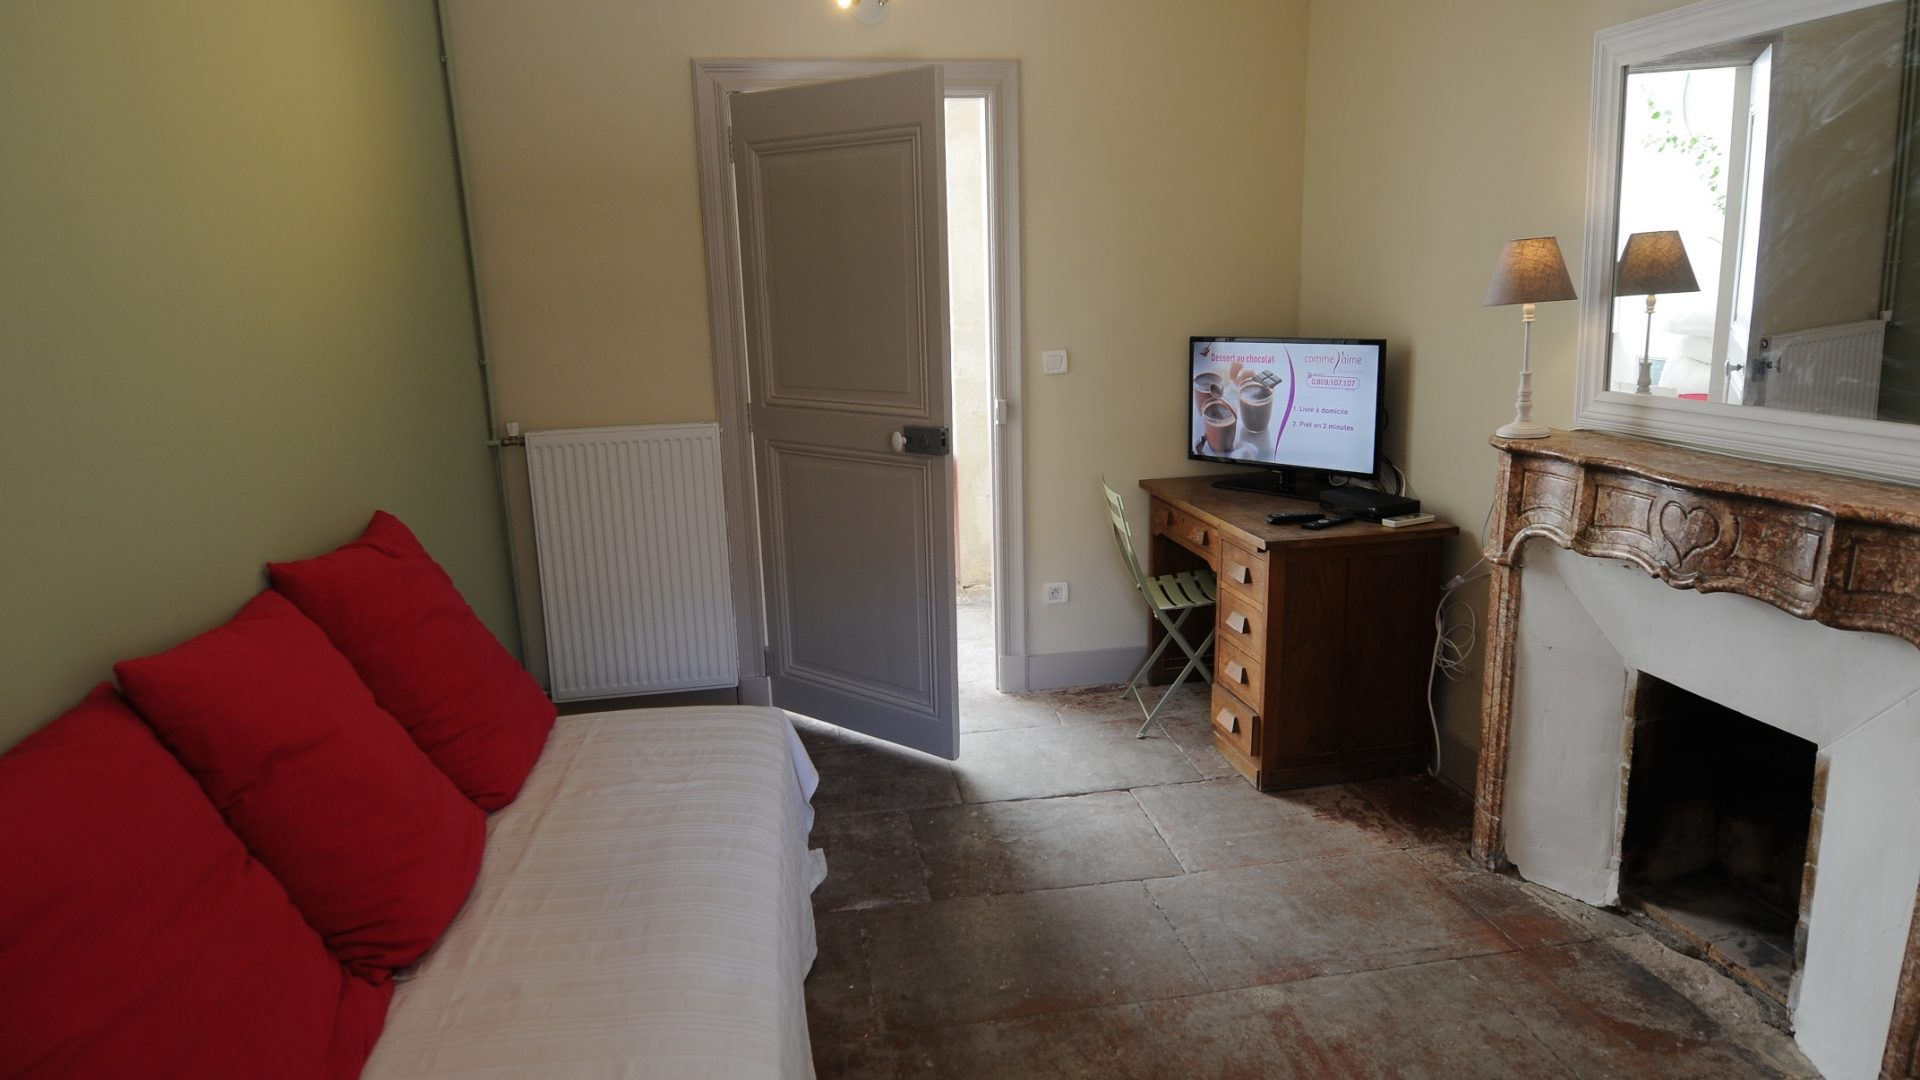 Little living room with TV & single bed - view on the corridor & terrace